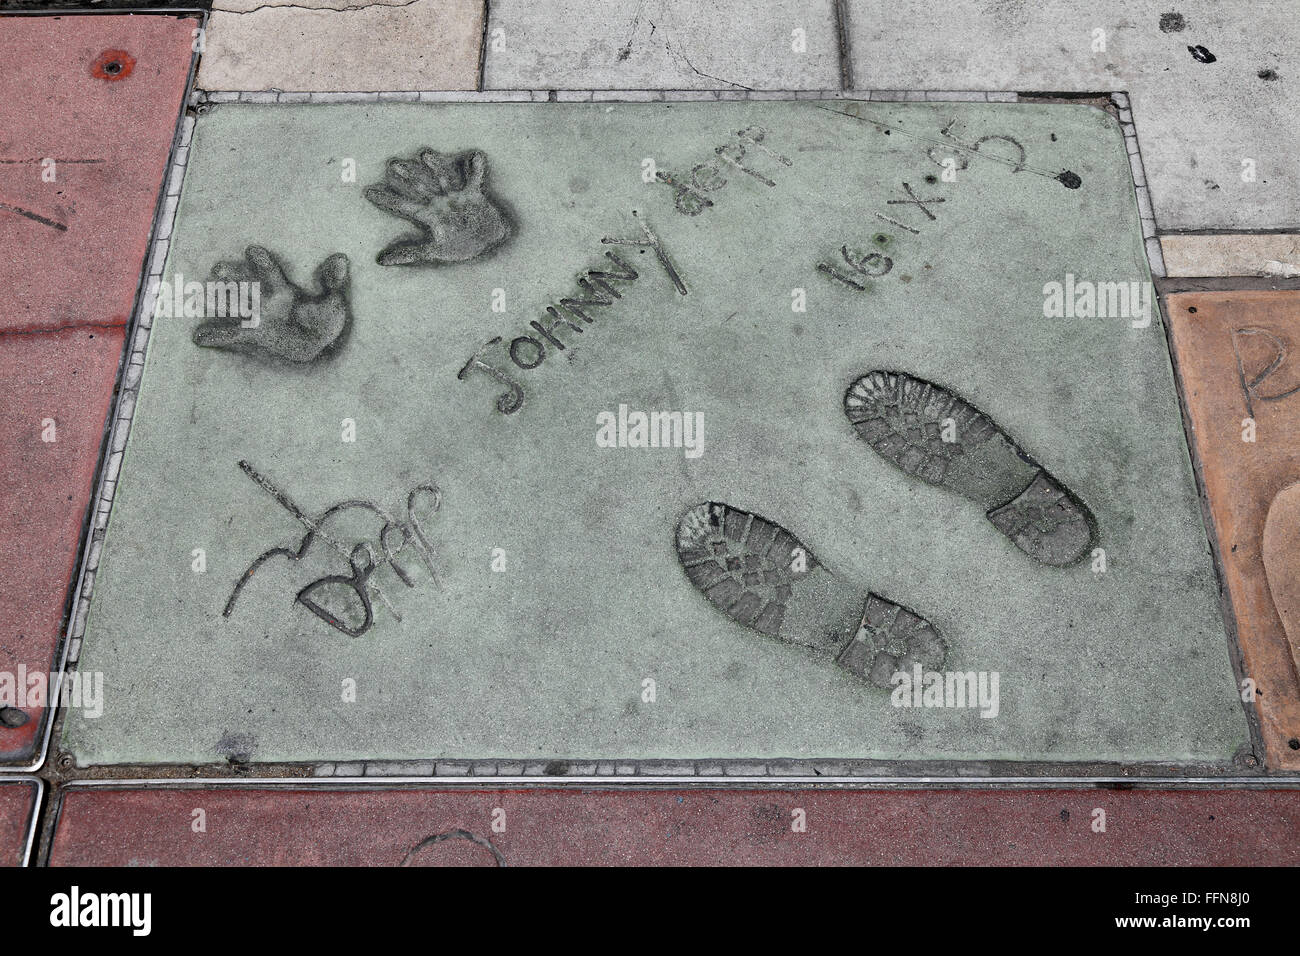 Depp, Johnny, * 9.6.1963, American actor, Hand- and footprints, Grauman's Chinese Theater, Hollywood Blvd, Hollywood, - Stock Image